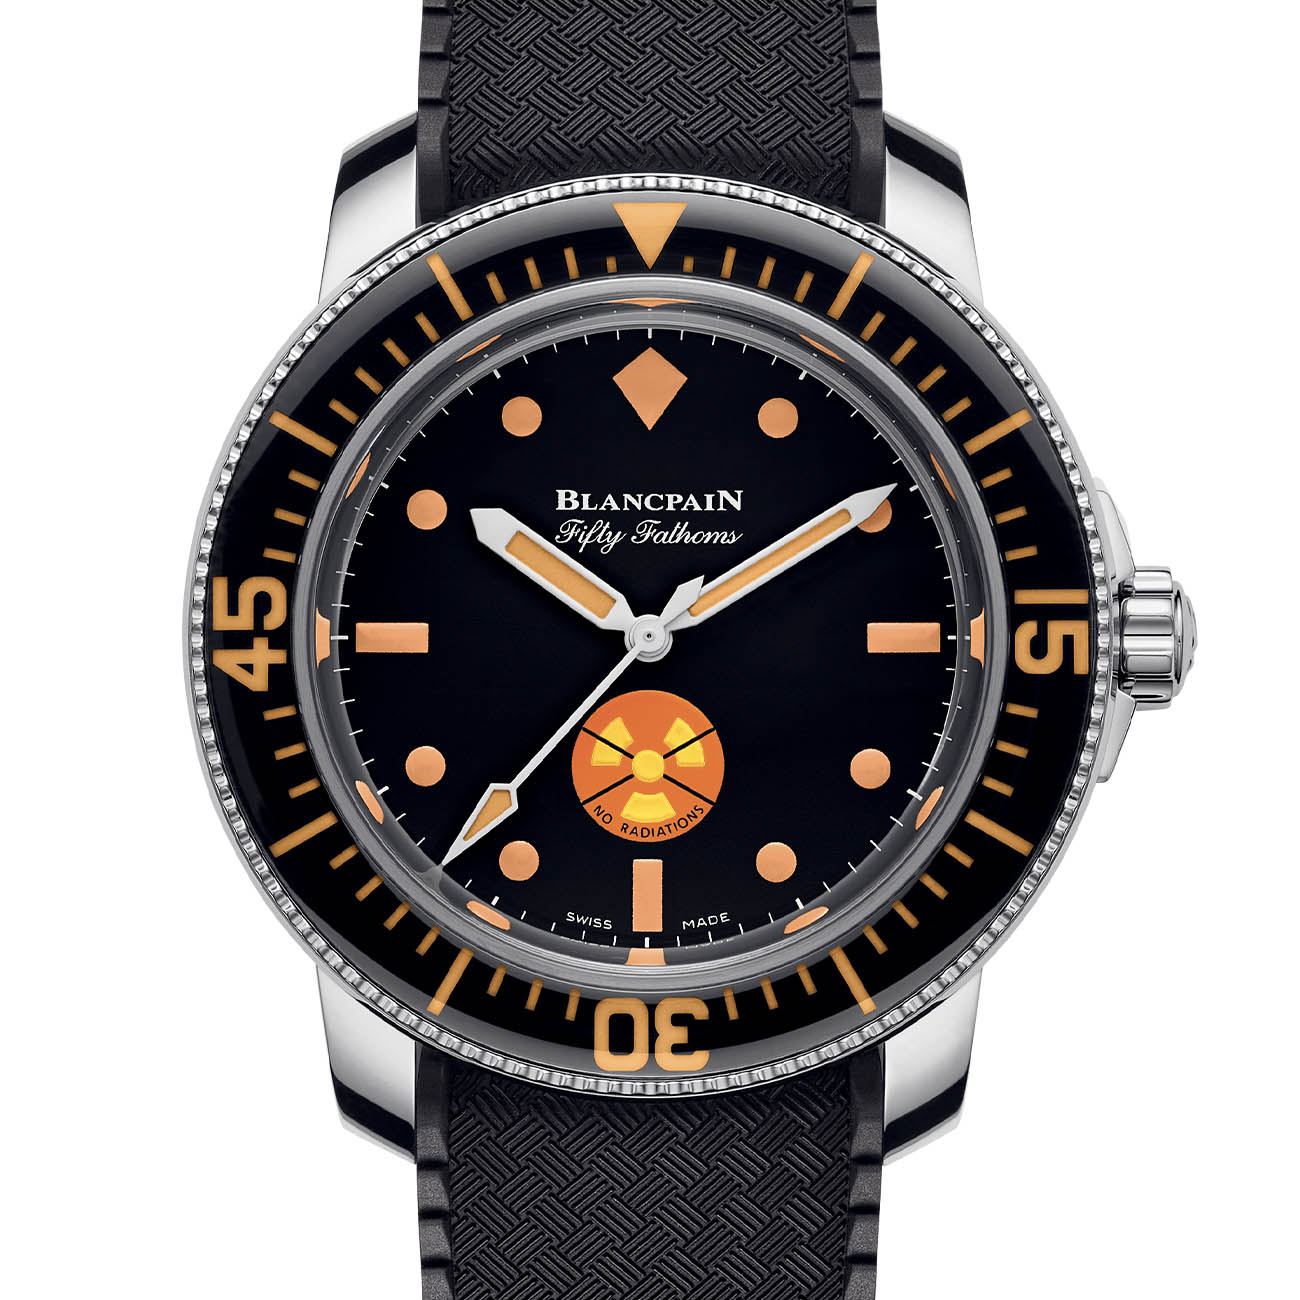 blancpain only watch 2021